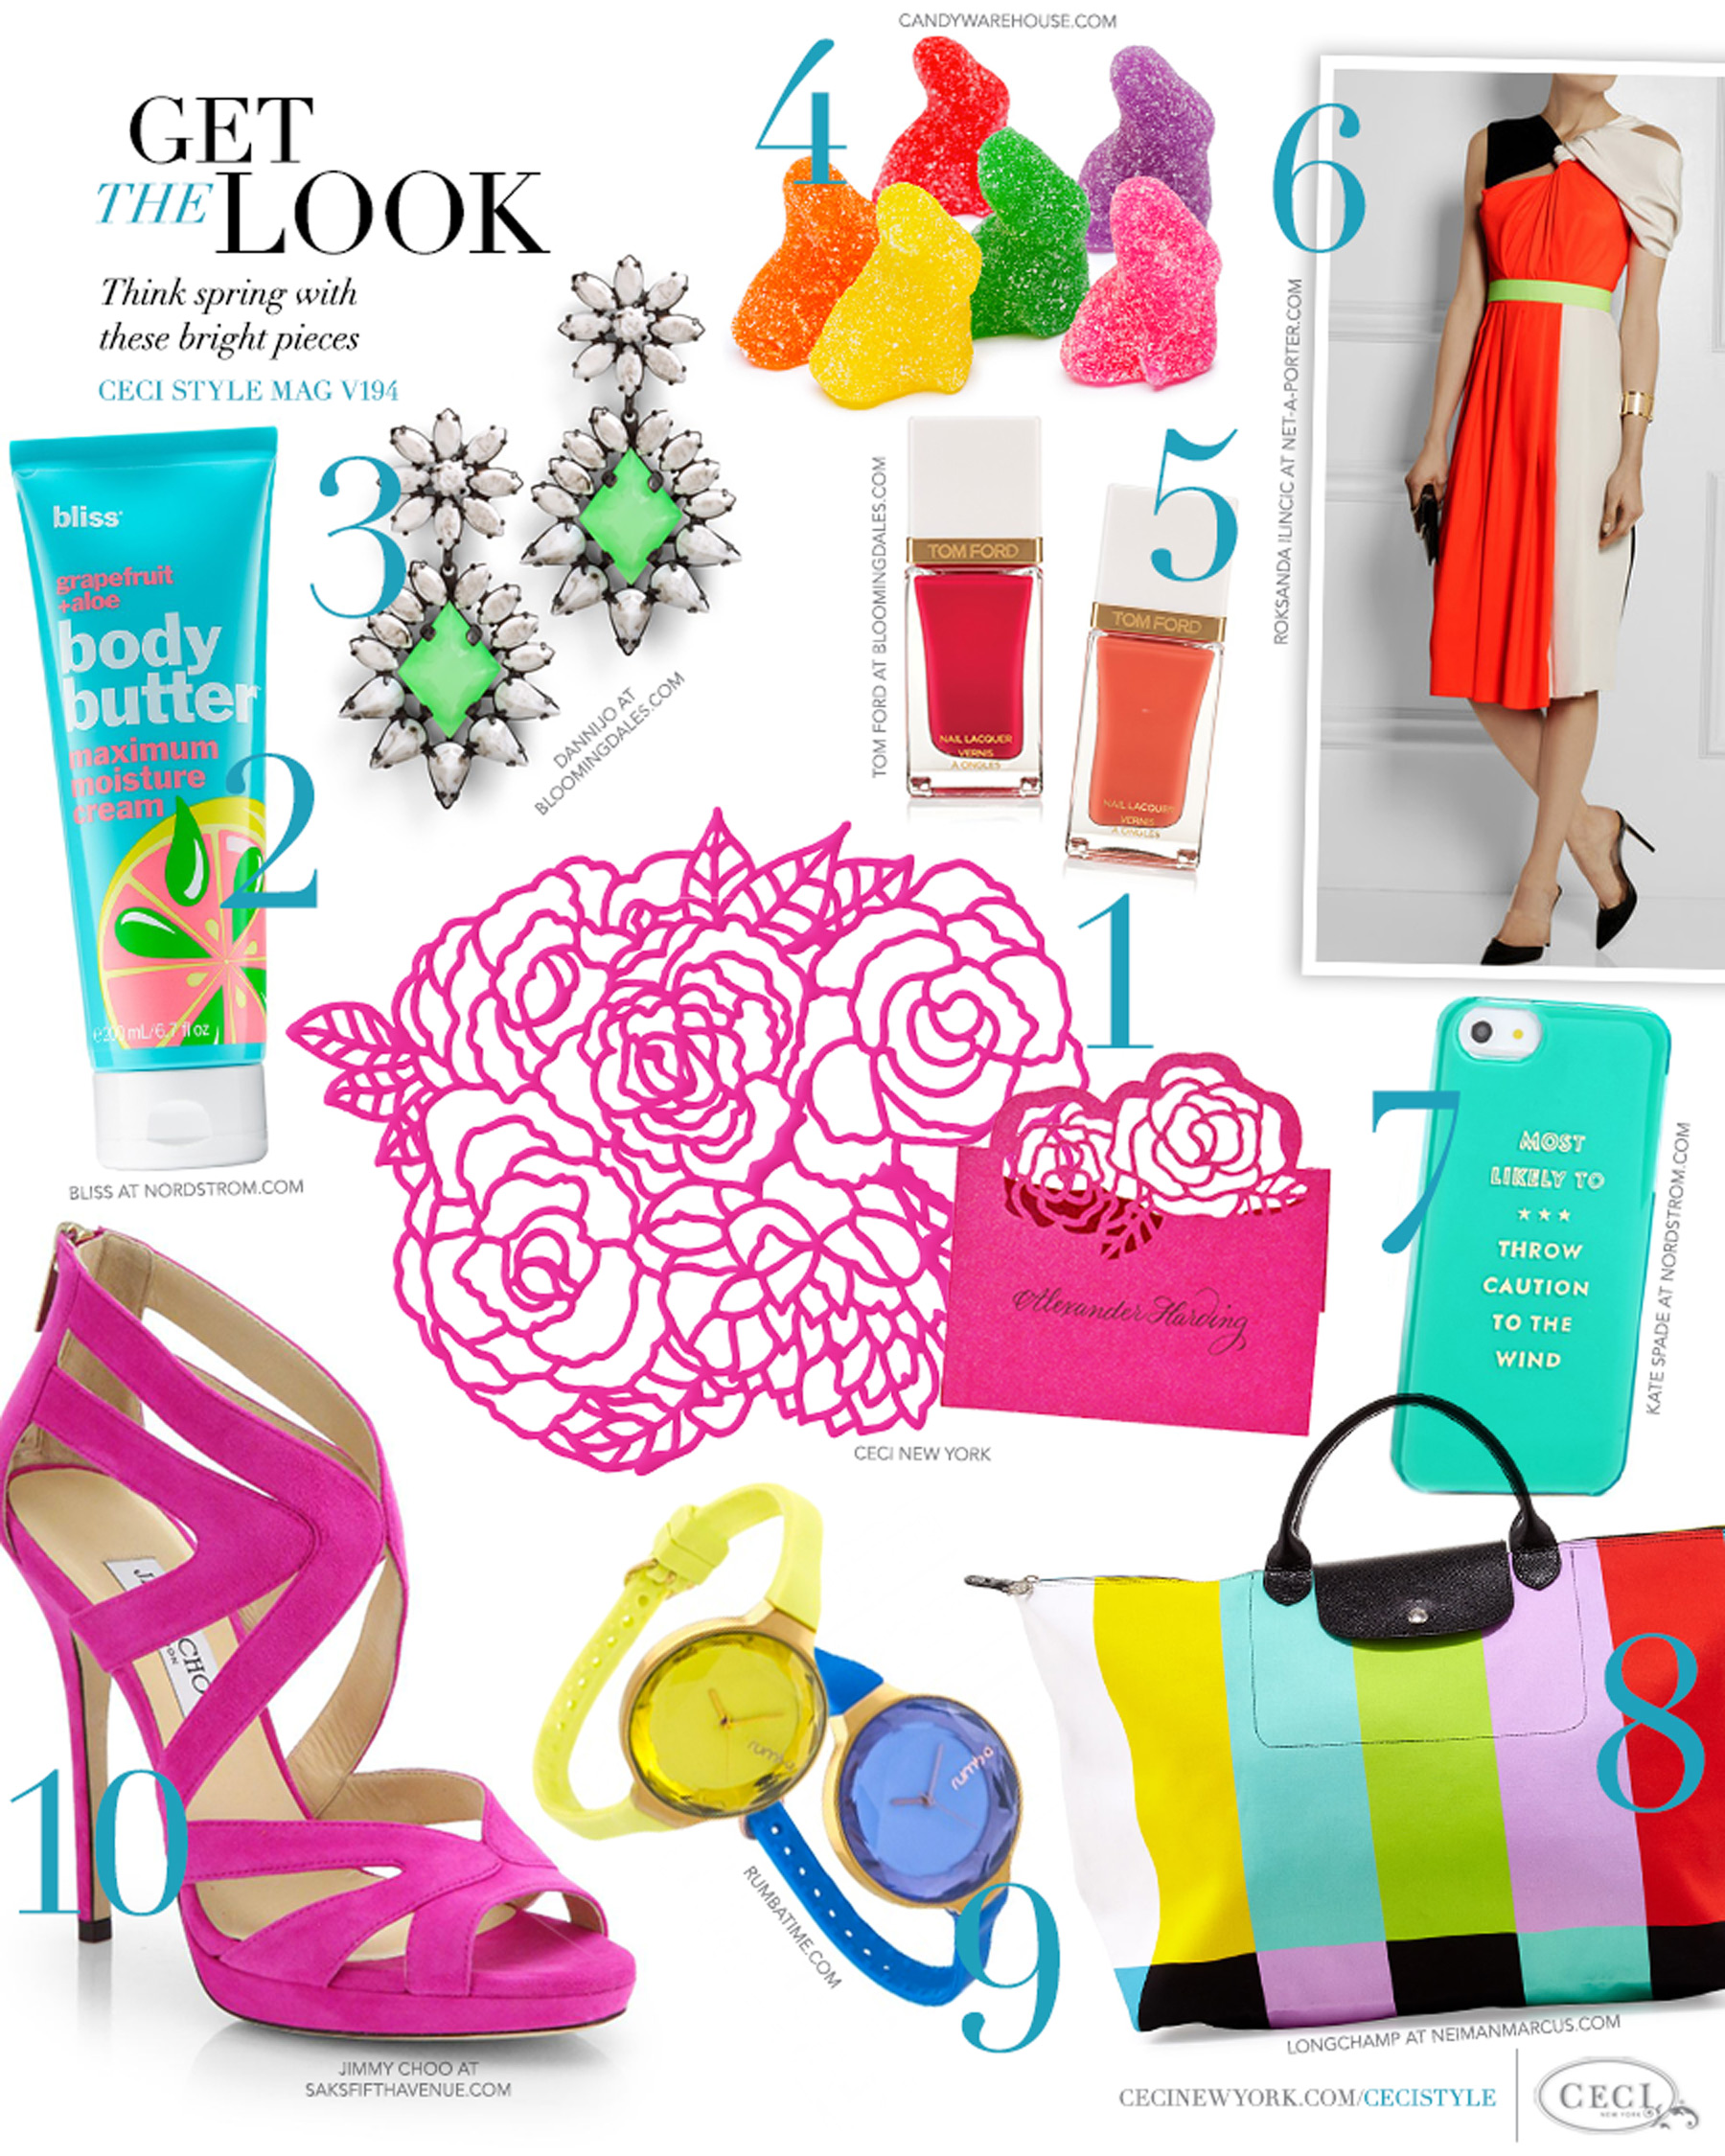 CeciStyle Magazine v194: Get The Look - Colors of Spring - Think spring with these bright pieces - Luxury Wedding Invitations by Ceci New York - bliss, beauty, dannijo, jewelry, ceci new york, placemat, tom ford, candywarehouse.com, roksanda ilincic, fashion, kate spade, longchamp, handbags, rumbatime, jimmy choo, shoes